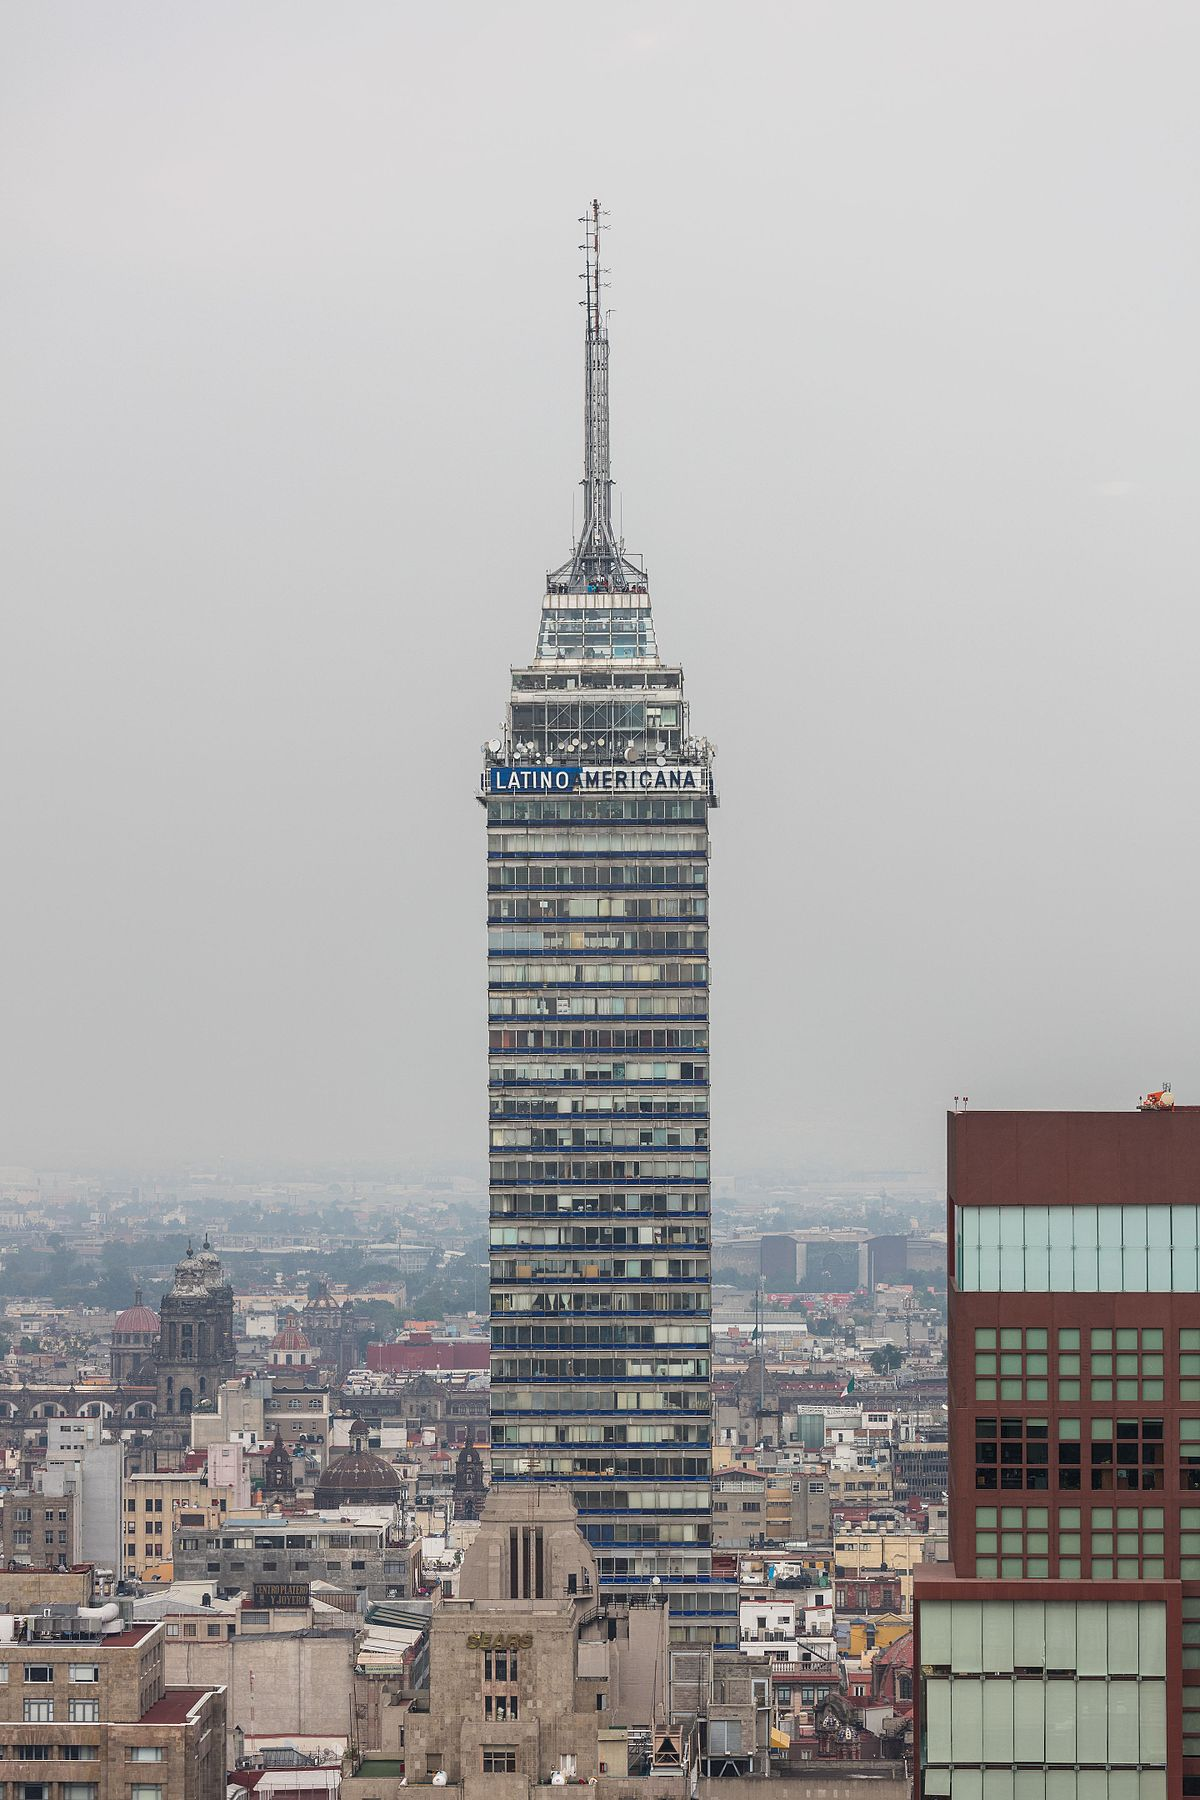 Torre latinoamericana wikipedia for Piso 9 torre latino